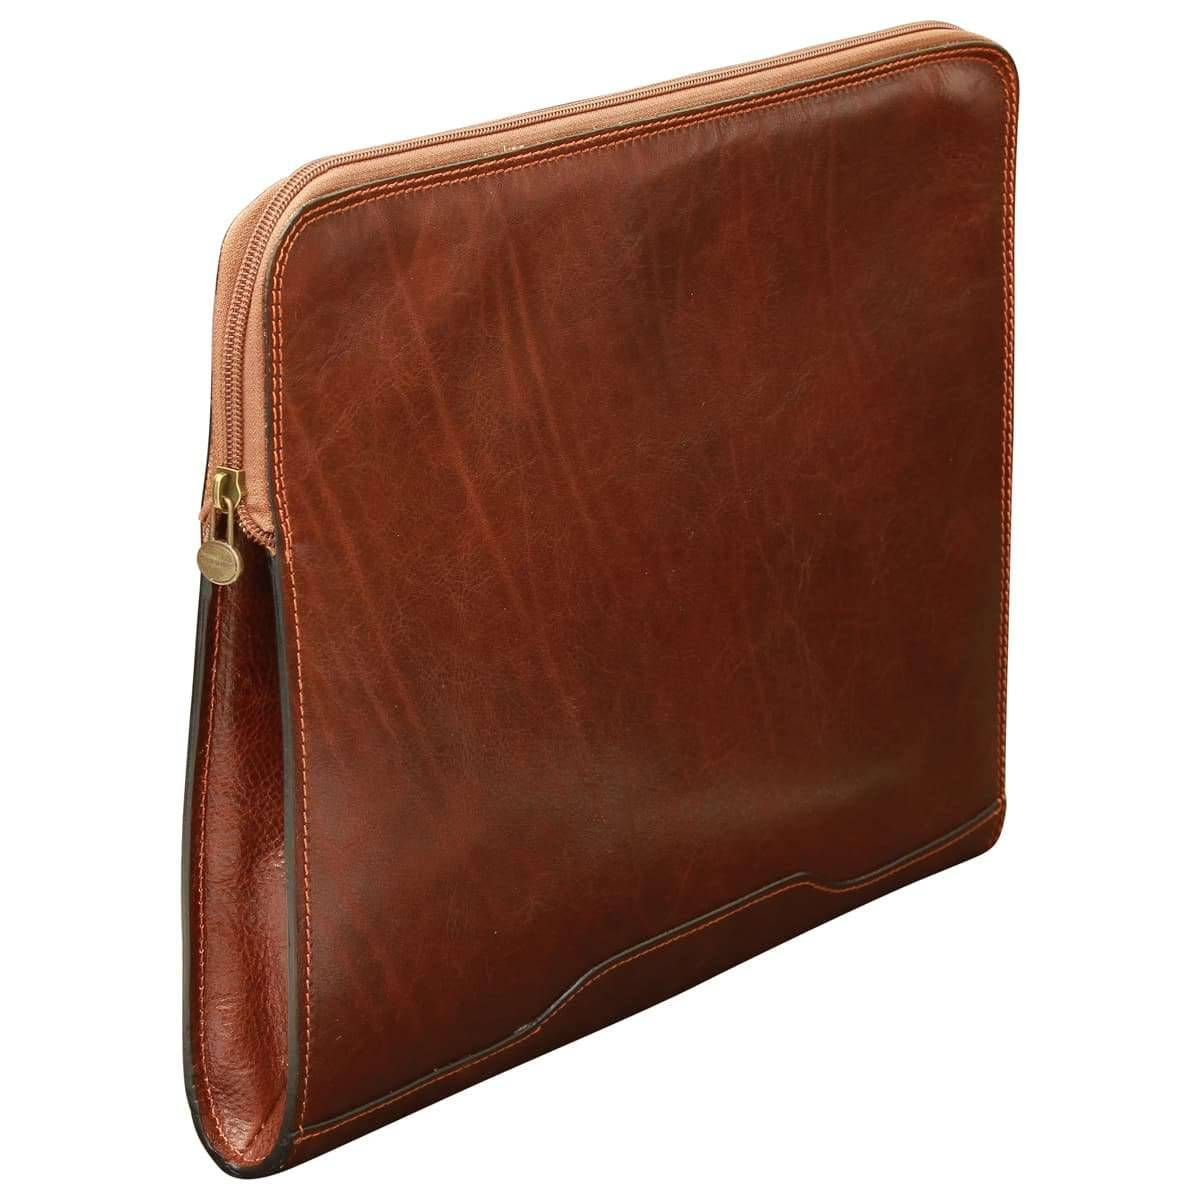 Leather Portfolio - Brown